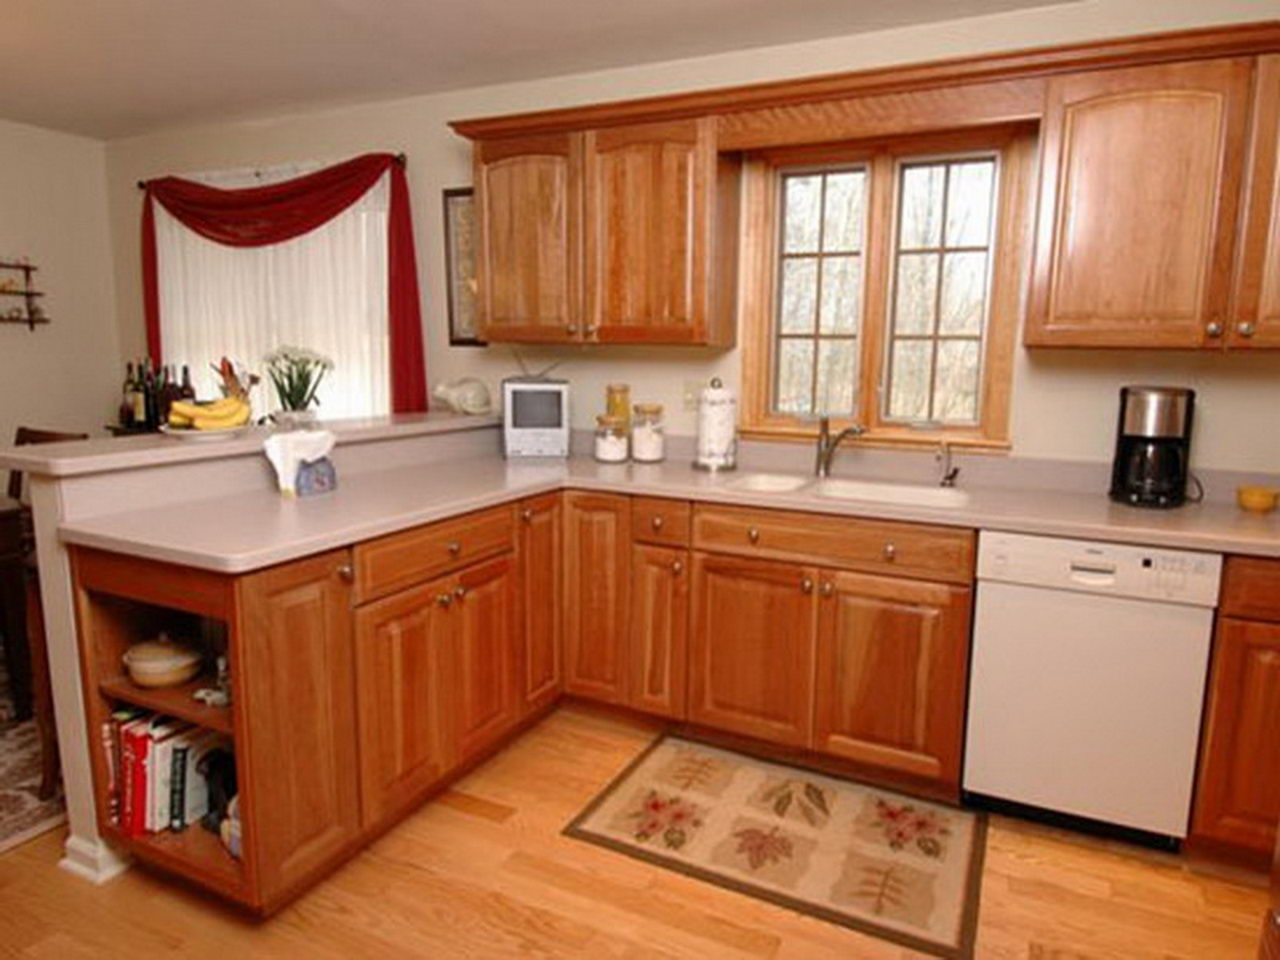 Kitchen cabinets and storage ideas homedizz for Kitchen cabinets ideas pictures